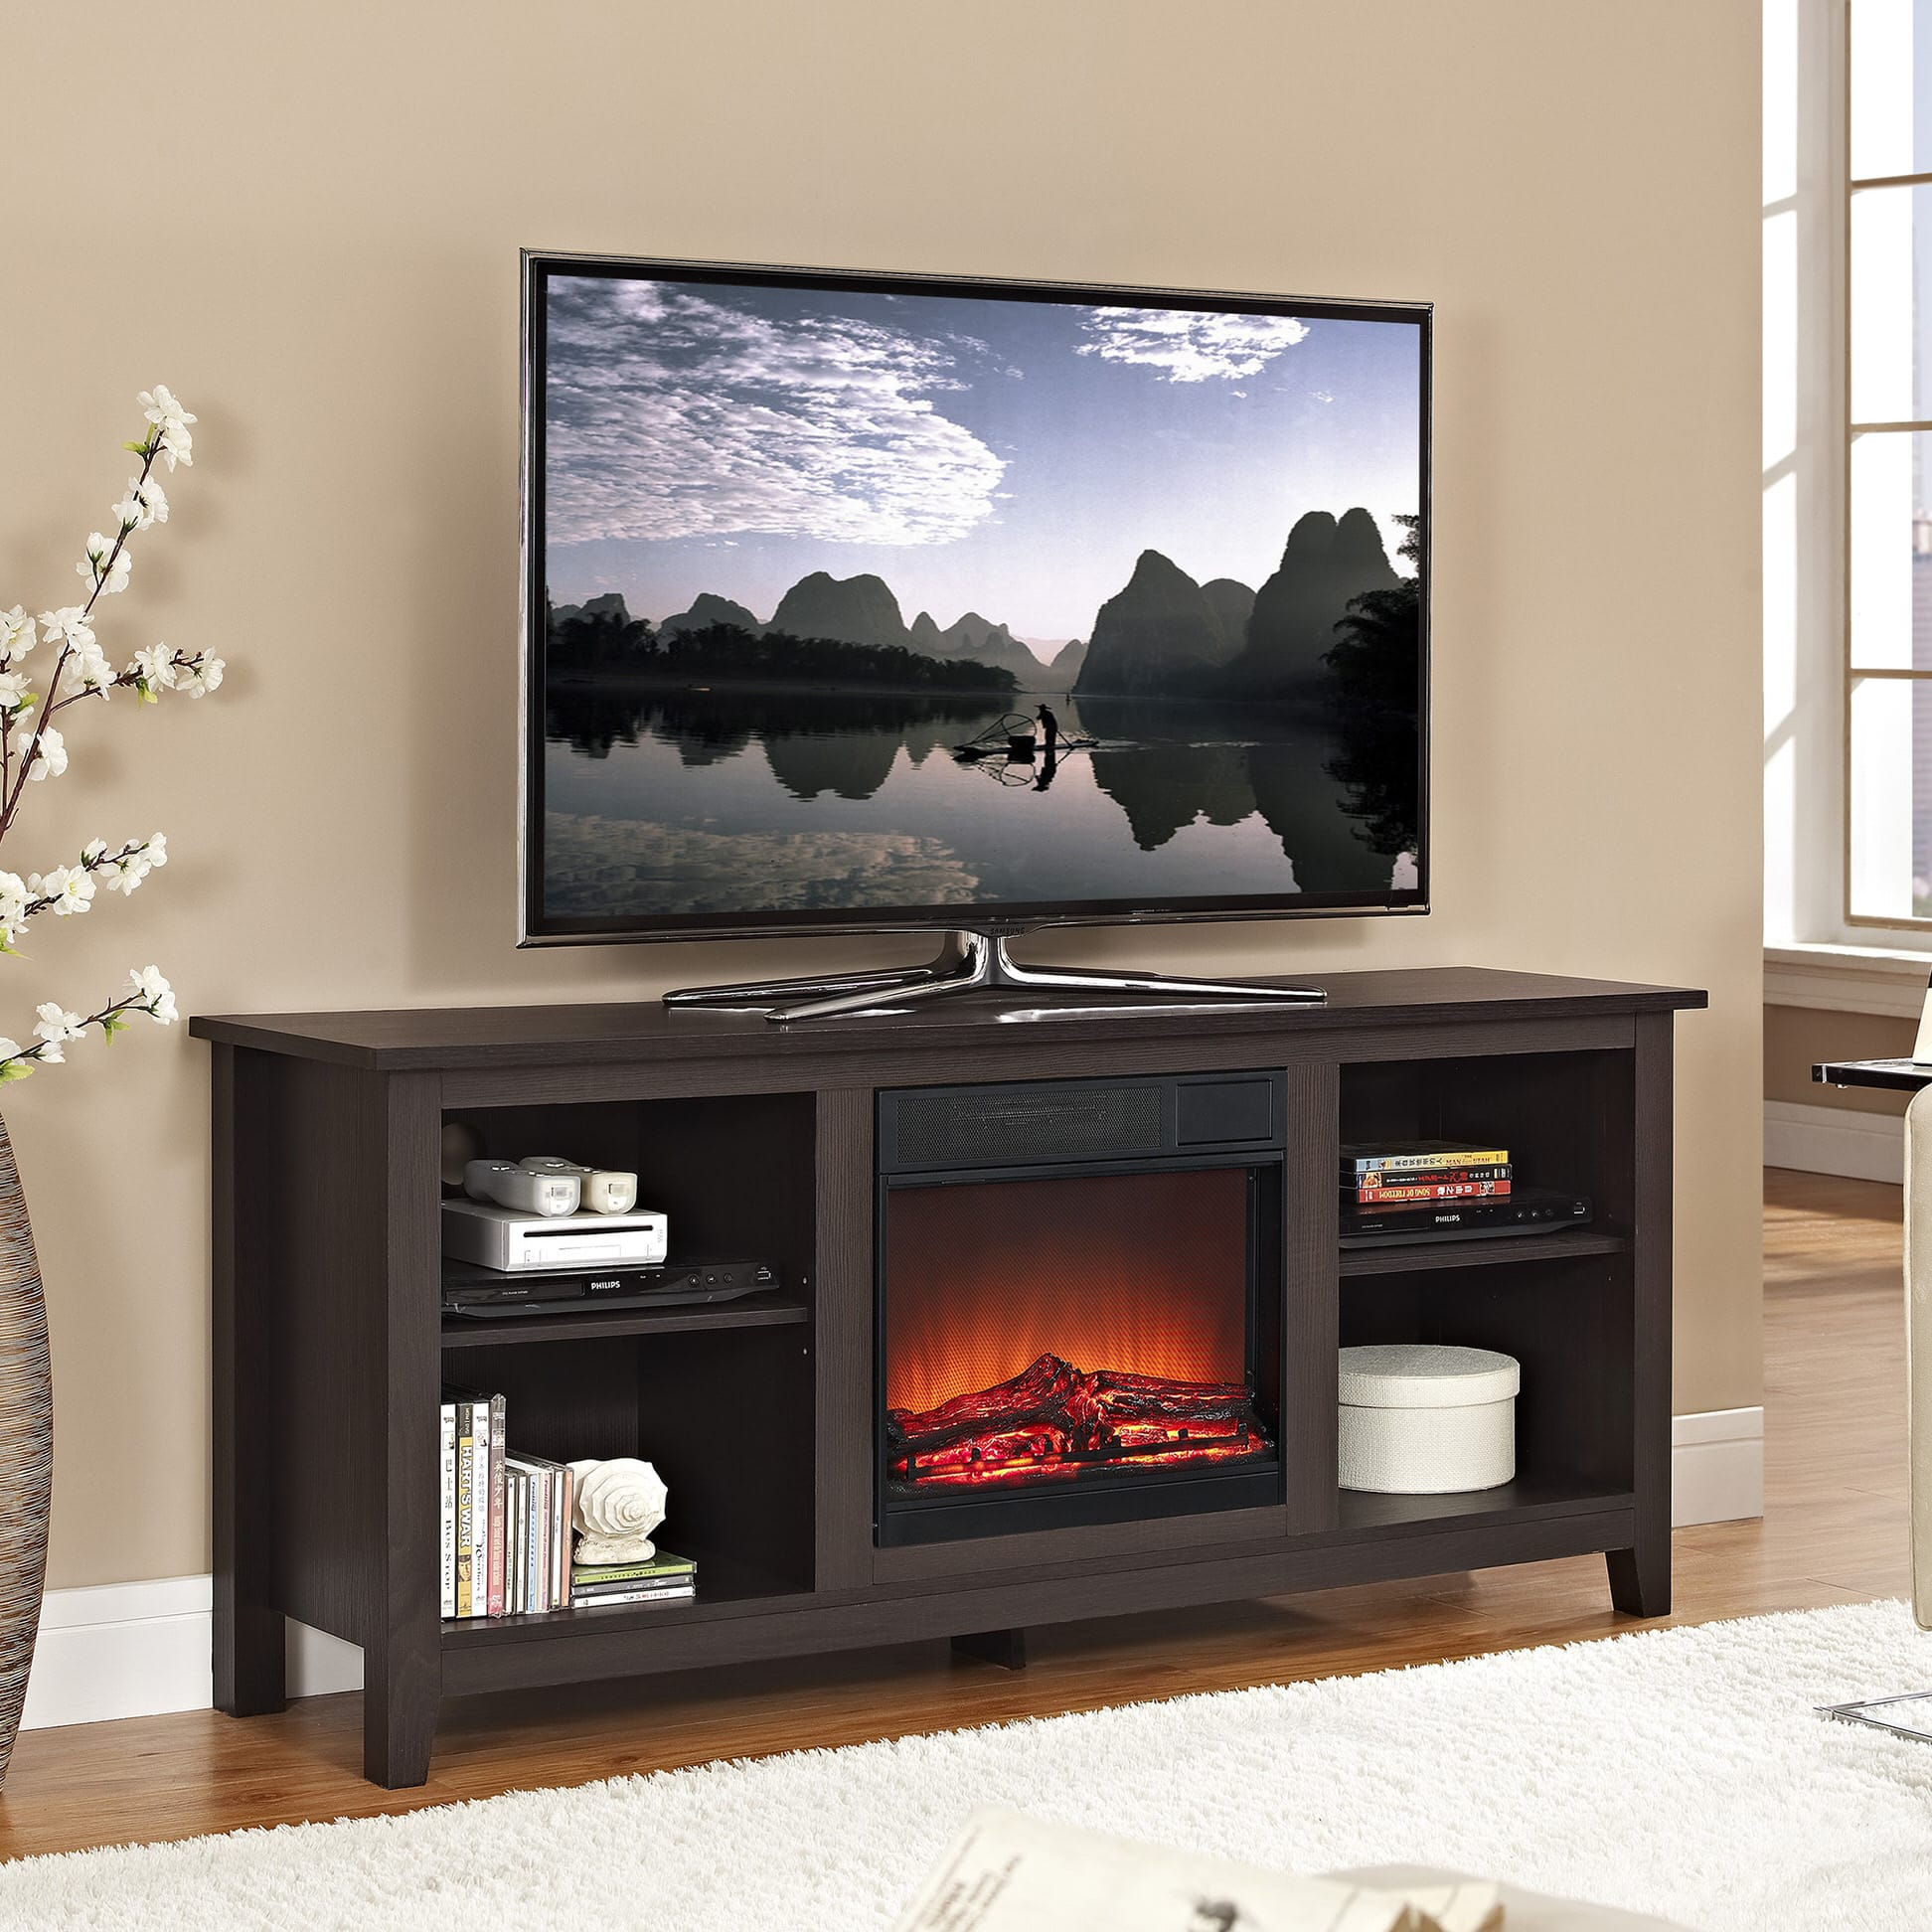 Sterling 56 inch tv stand with electric fireplace walnut 23im0468 w502 - 24069 W58fp18estvs 700610 F4522 Tv027 700645 700619 700617 Essential 58 Inch Fireplace Tv